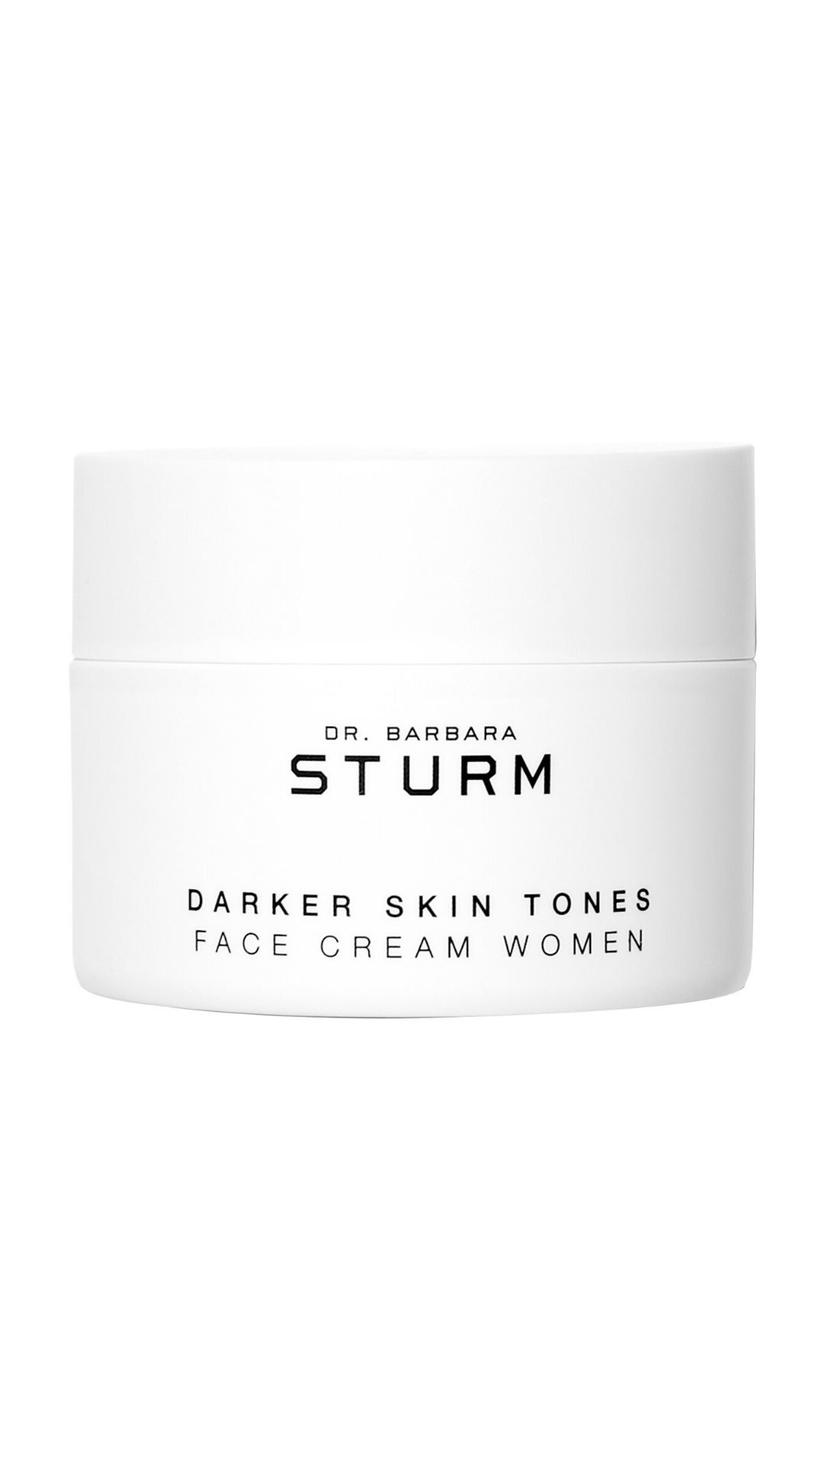 Best face moisturizer, Best face moisturizers in 2020, Best face moisturizers of all time, Face moisturizer for Oily skin, Best face moisturizer for dry skin